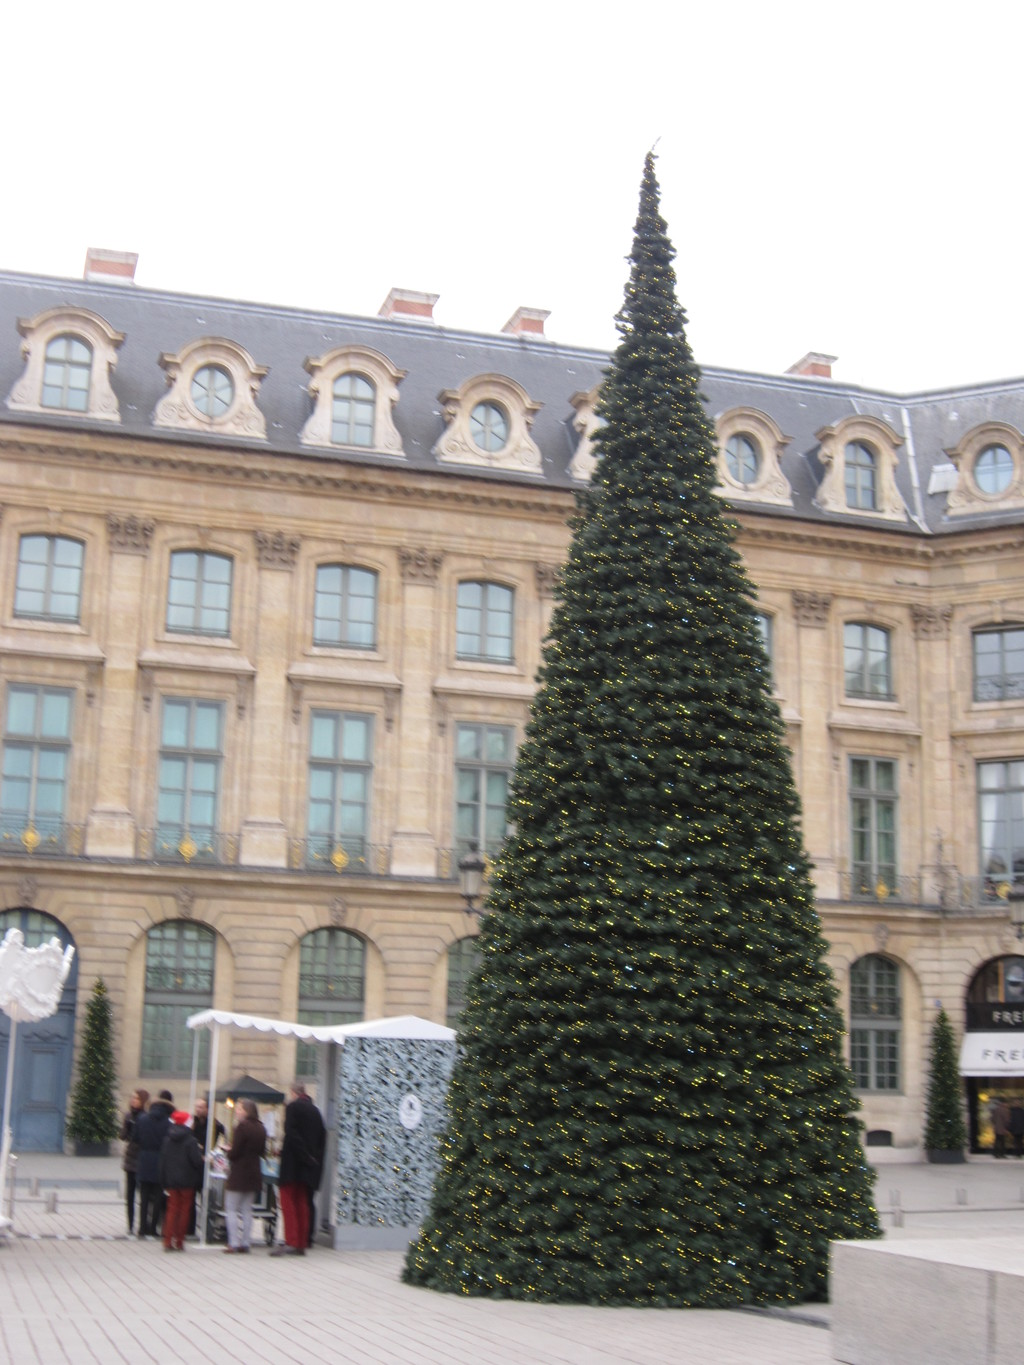 One of the most luxurious squares in Paris